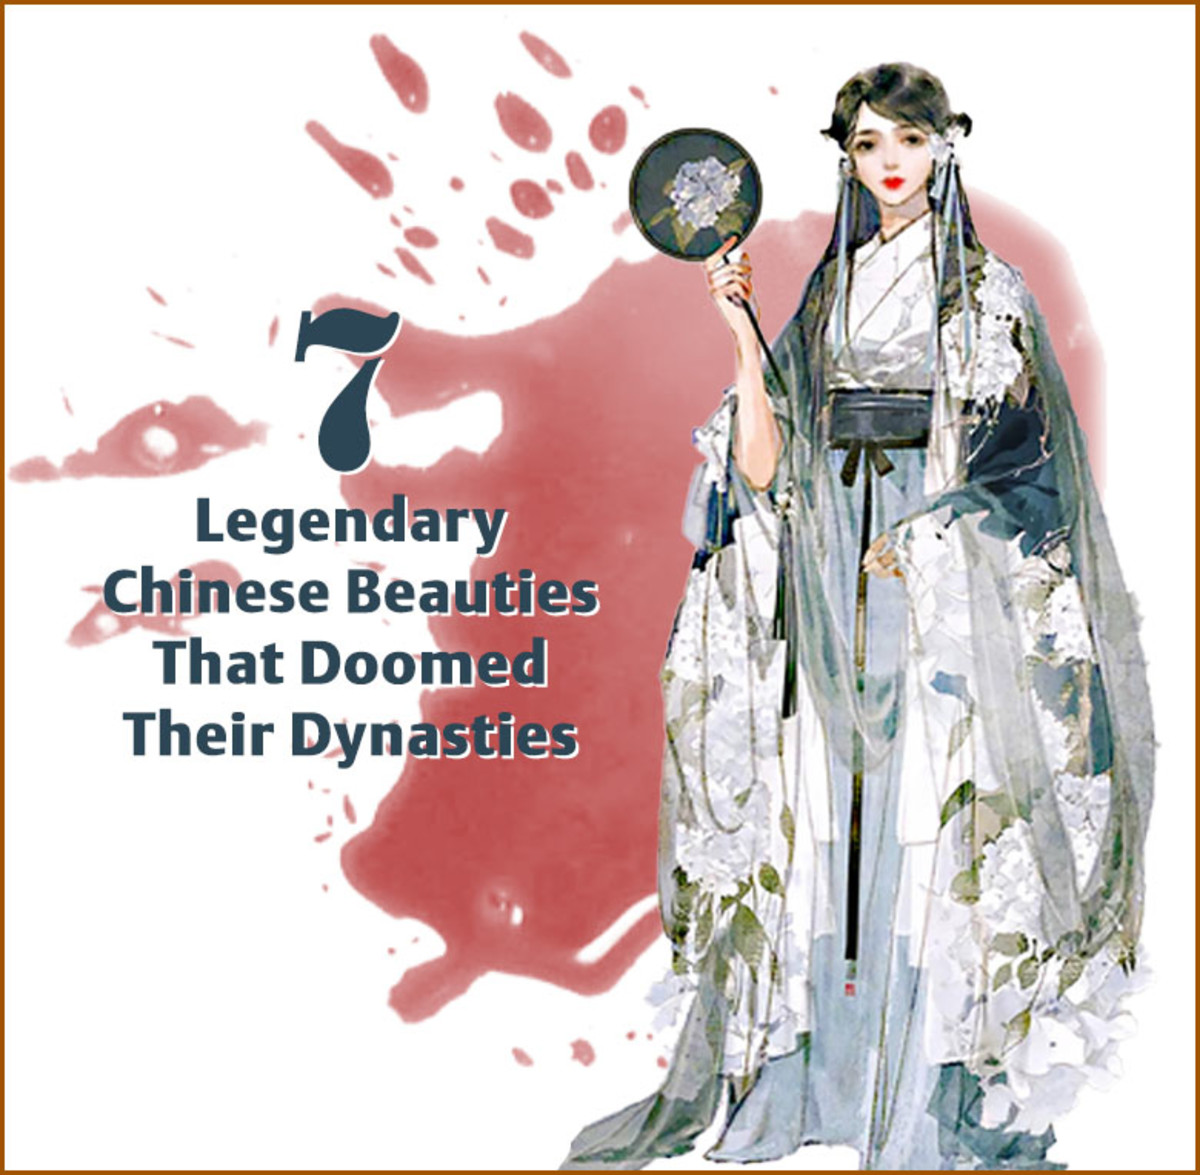 7 Legendary Chinese Beauties That Doomed Dynasties